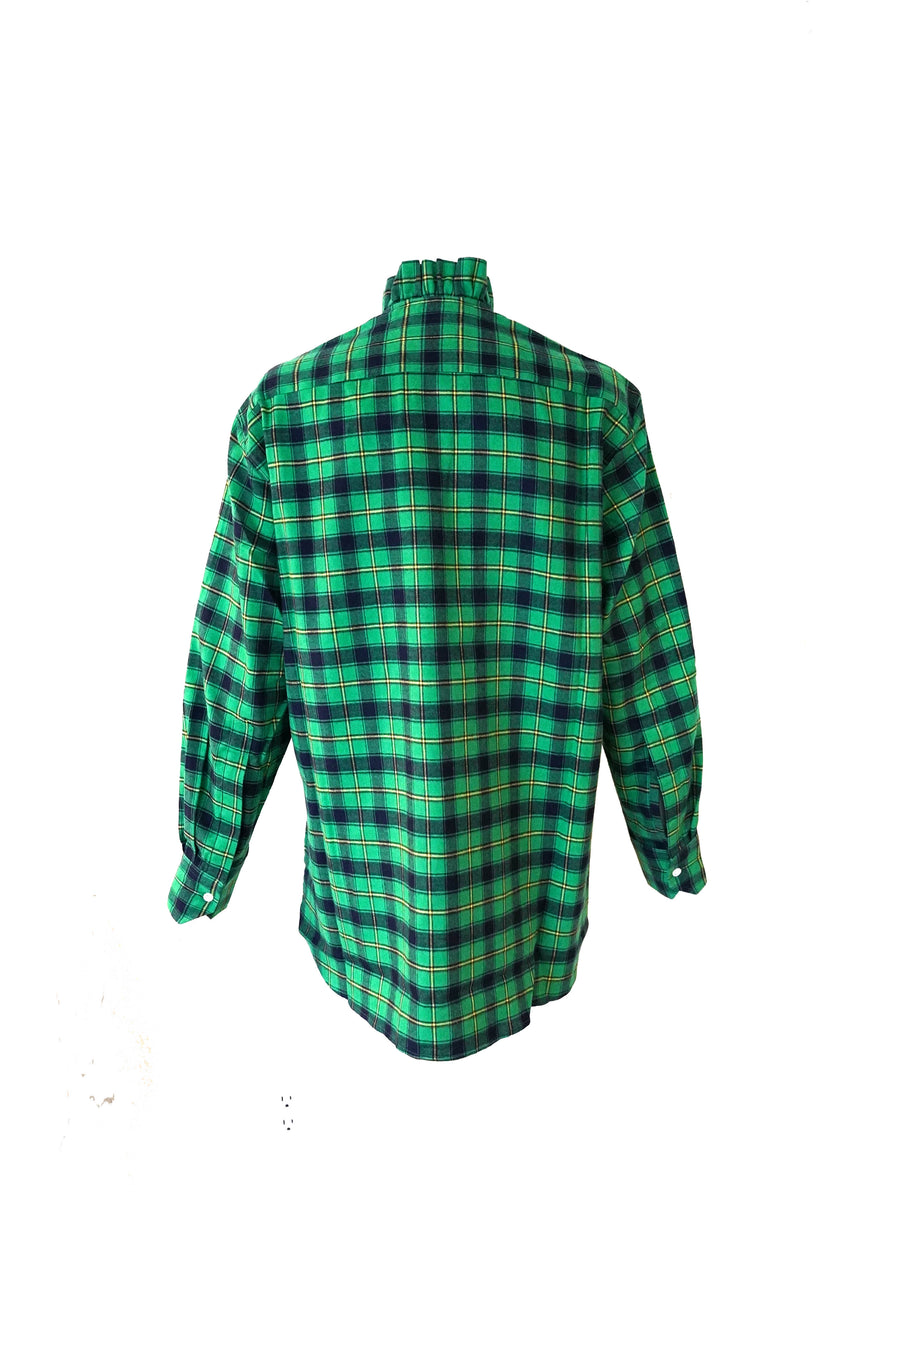 Long Sleeve Shirt in Green Plaid